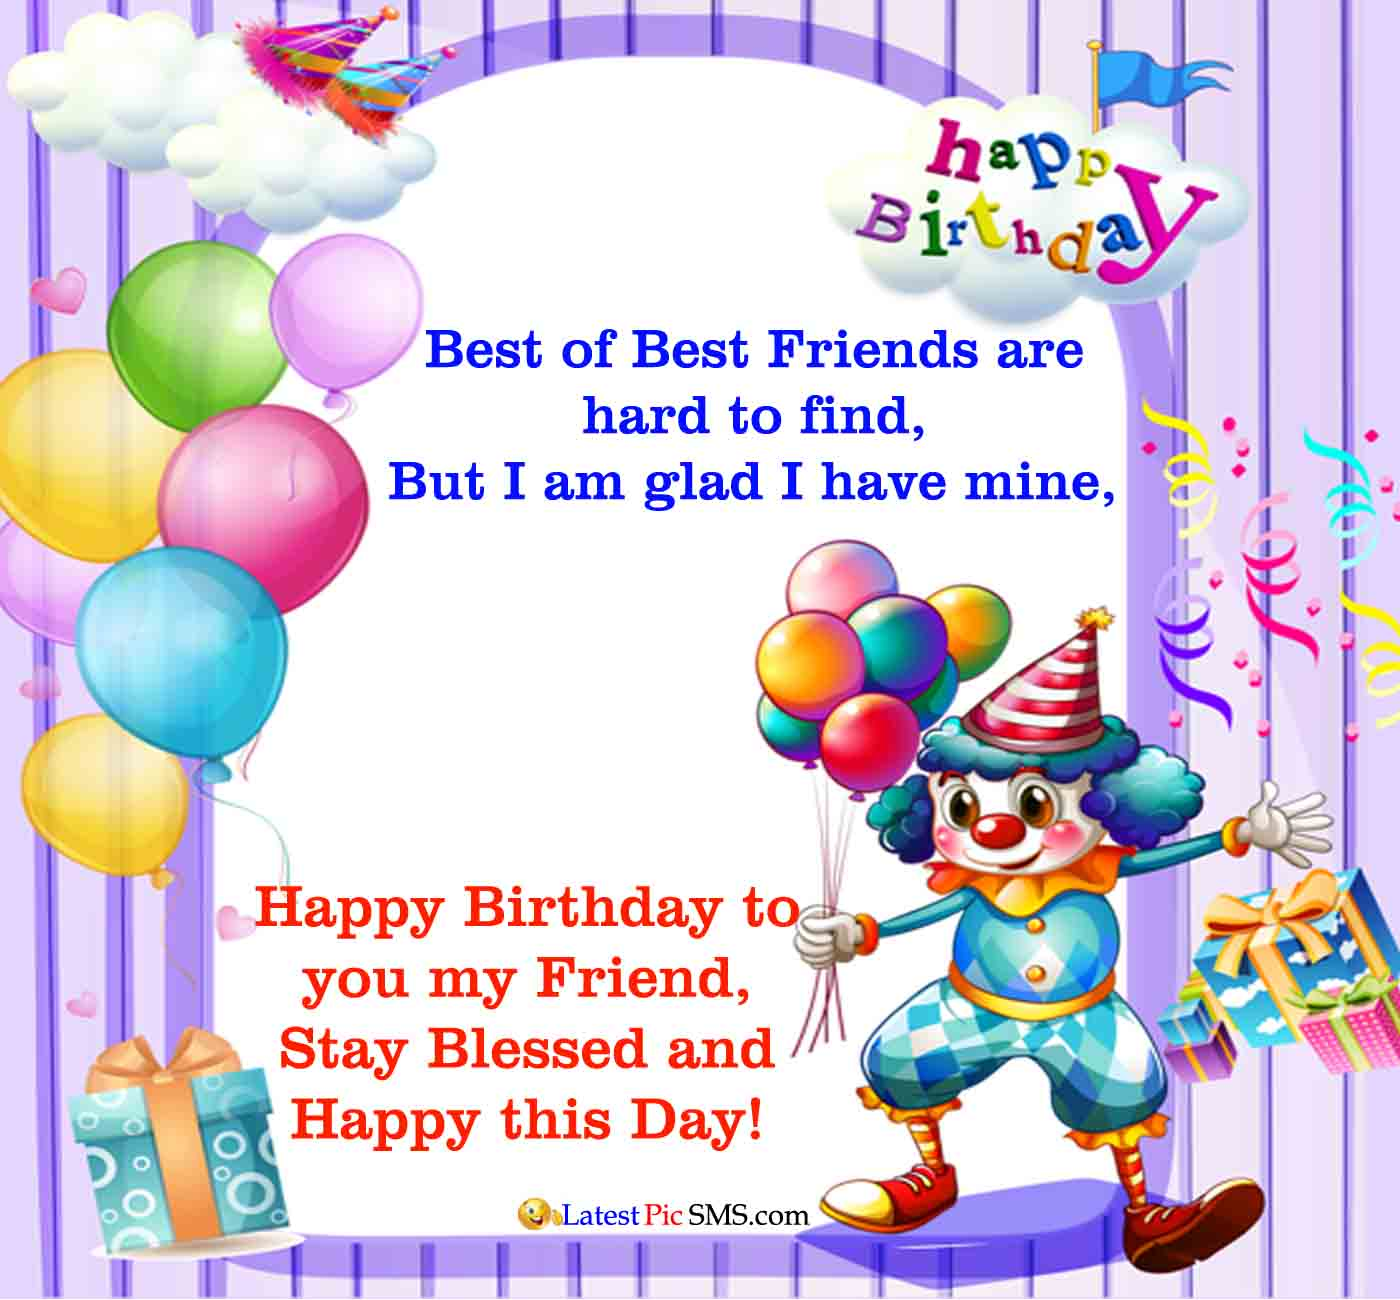 sweet birthday wishes for a friend